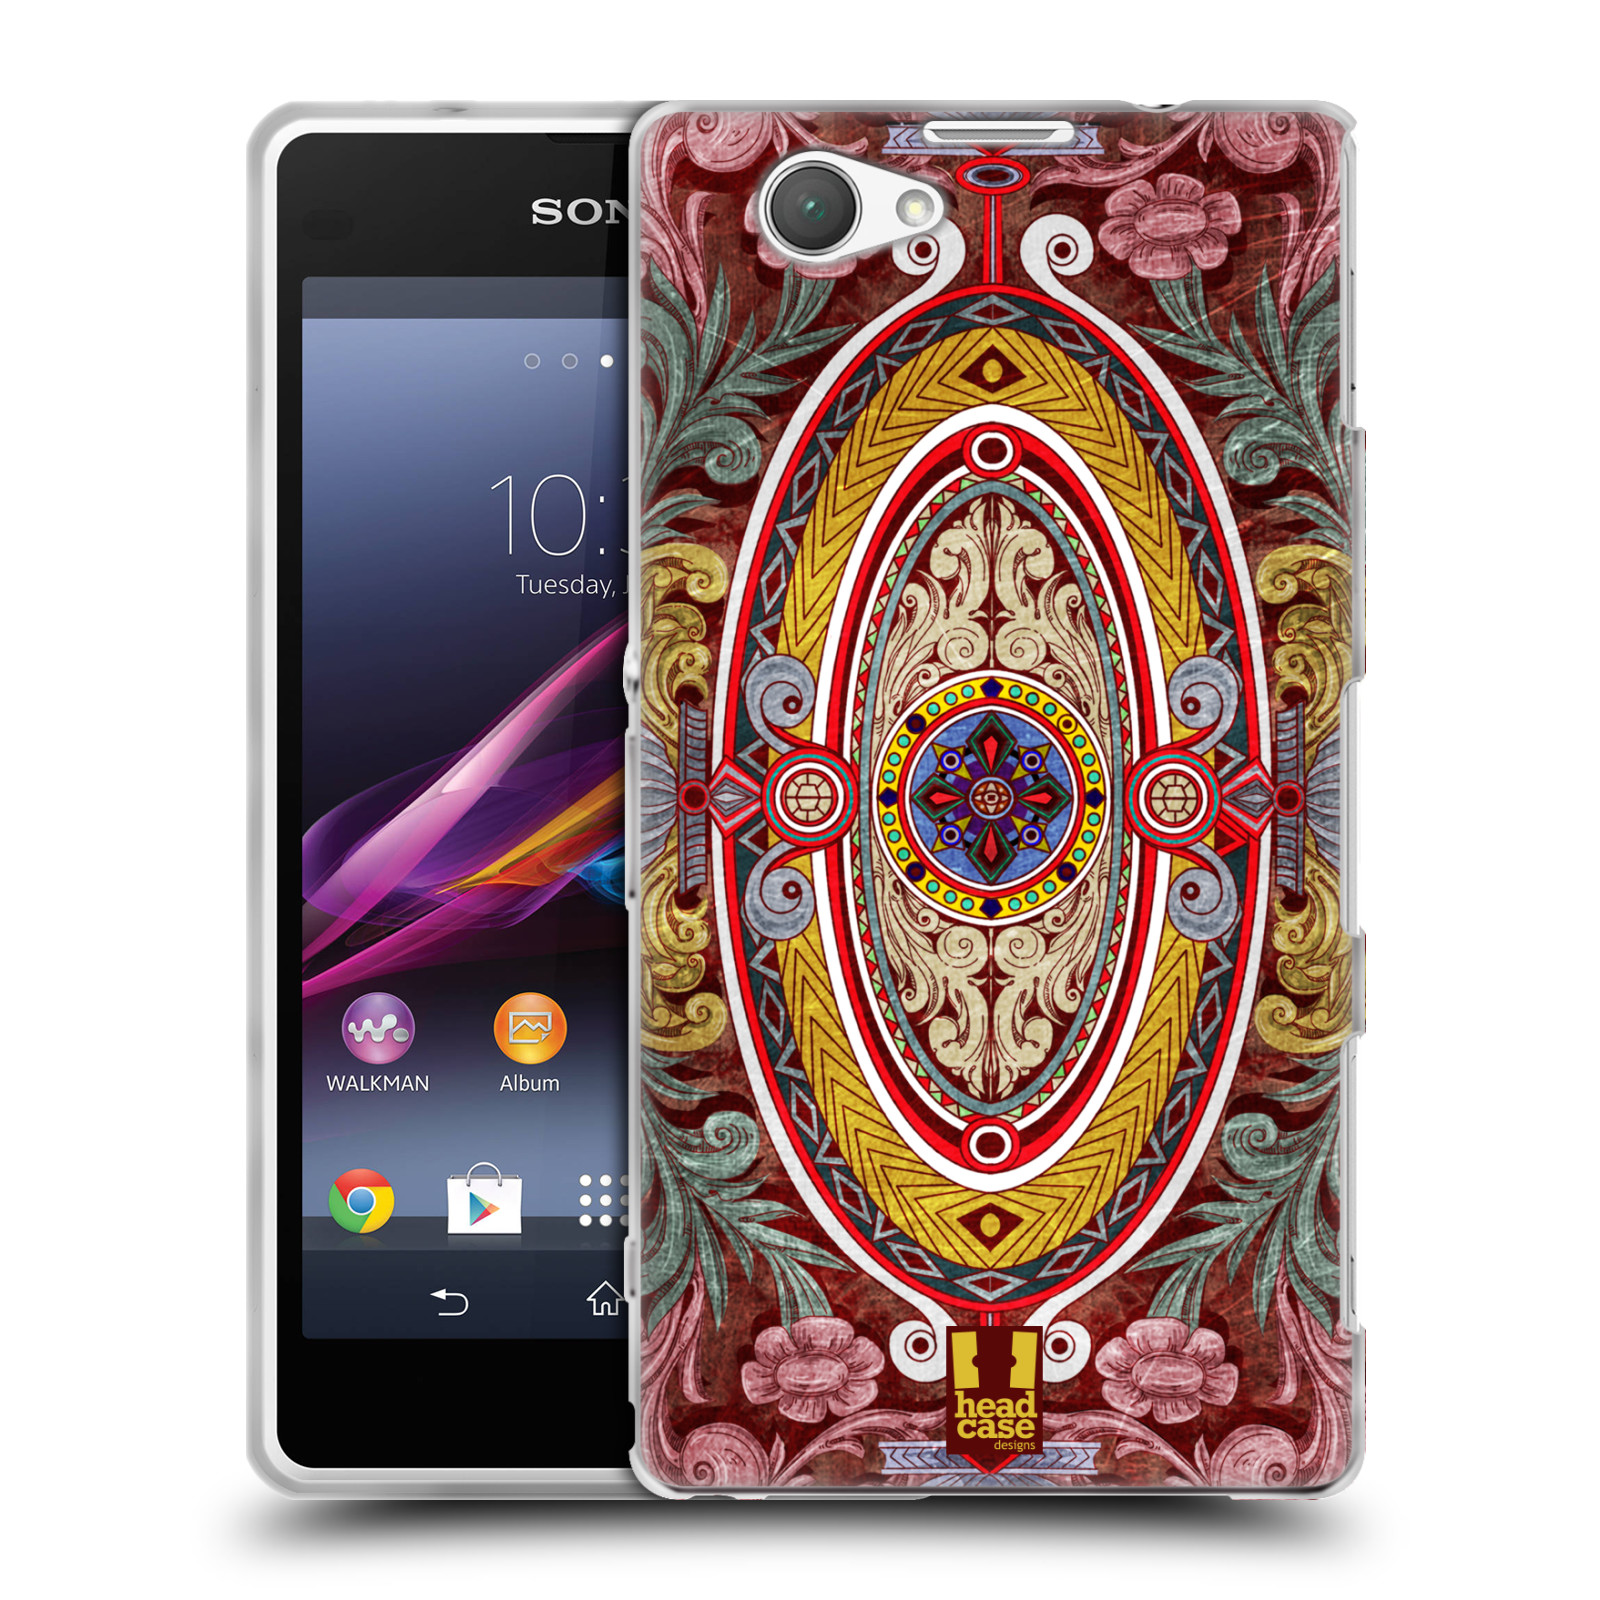 HEAD CASE ARABESQUE PATTERN SILICONE GEL CASE FOR SONY XPERIA Z1 COMPACT D5503